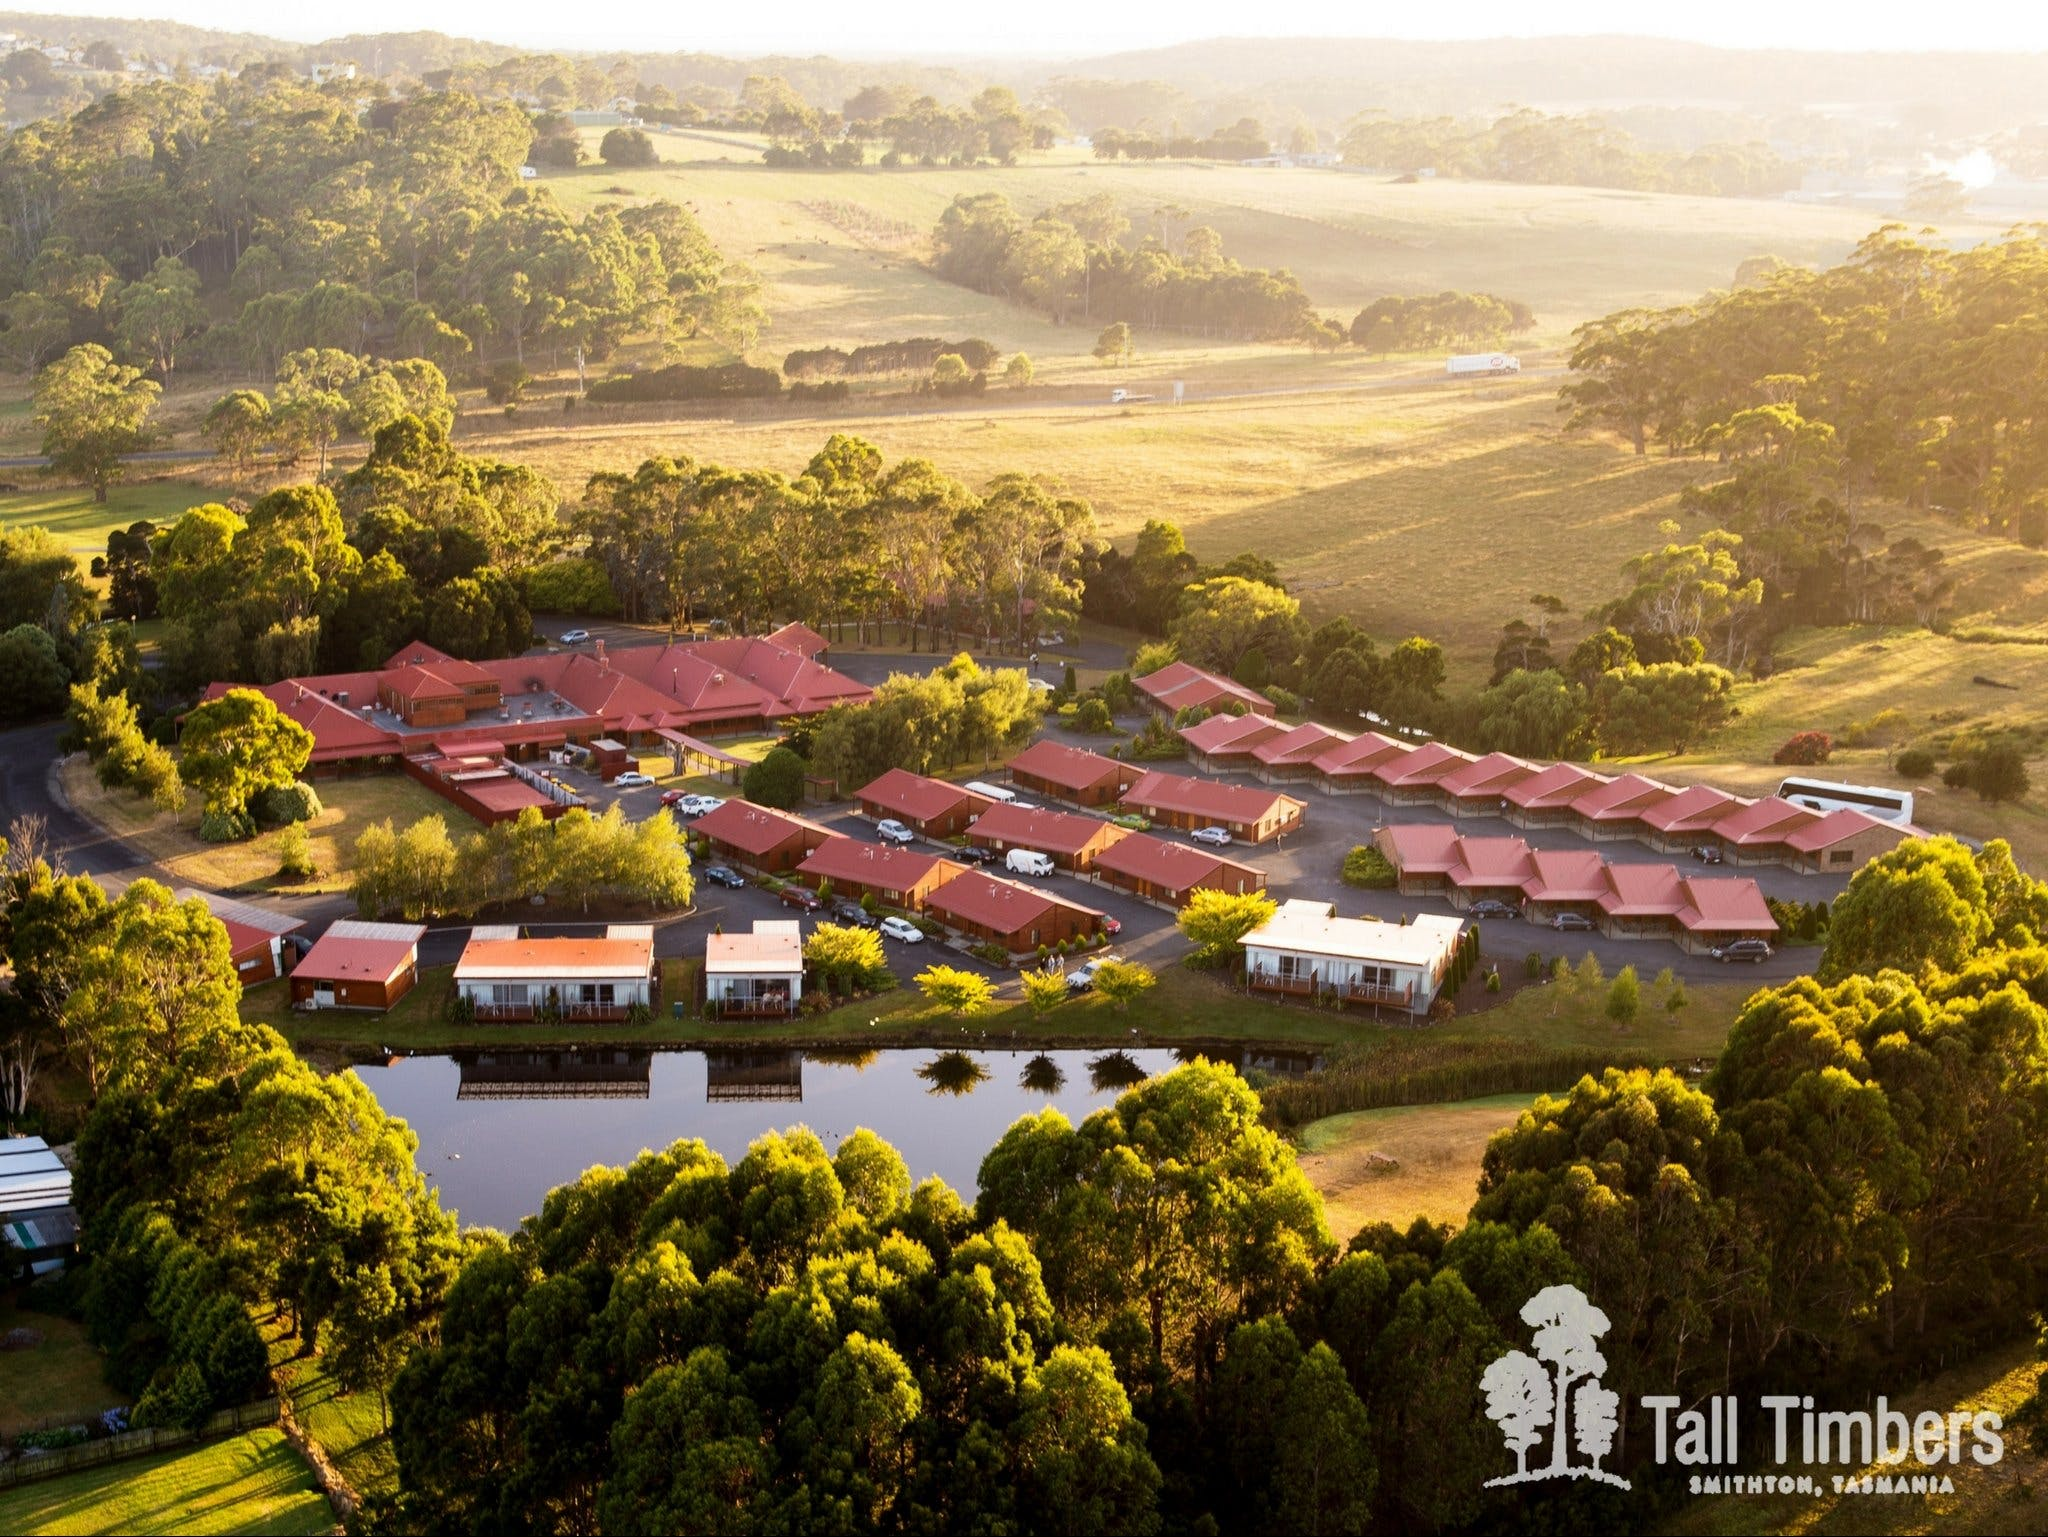 Tall Timbers Tasmania - WA Accommodation